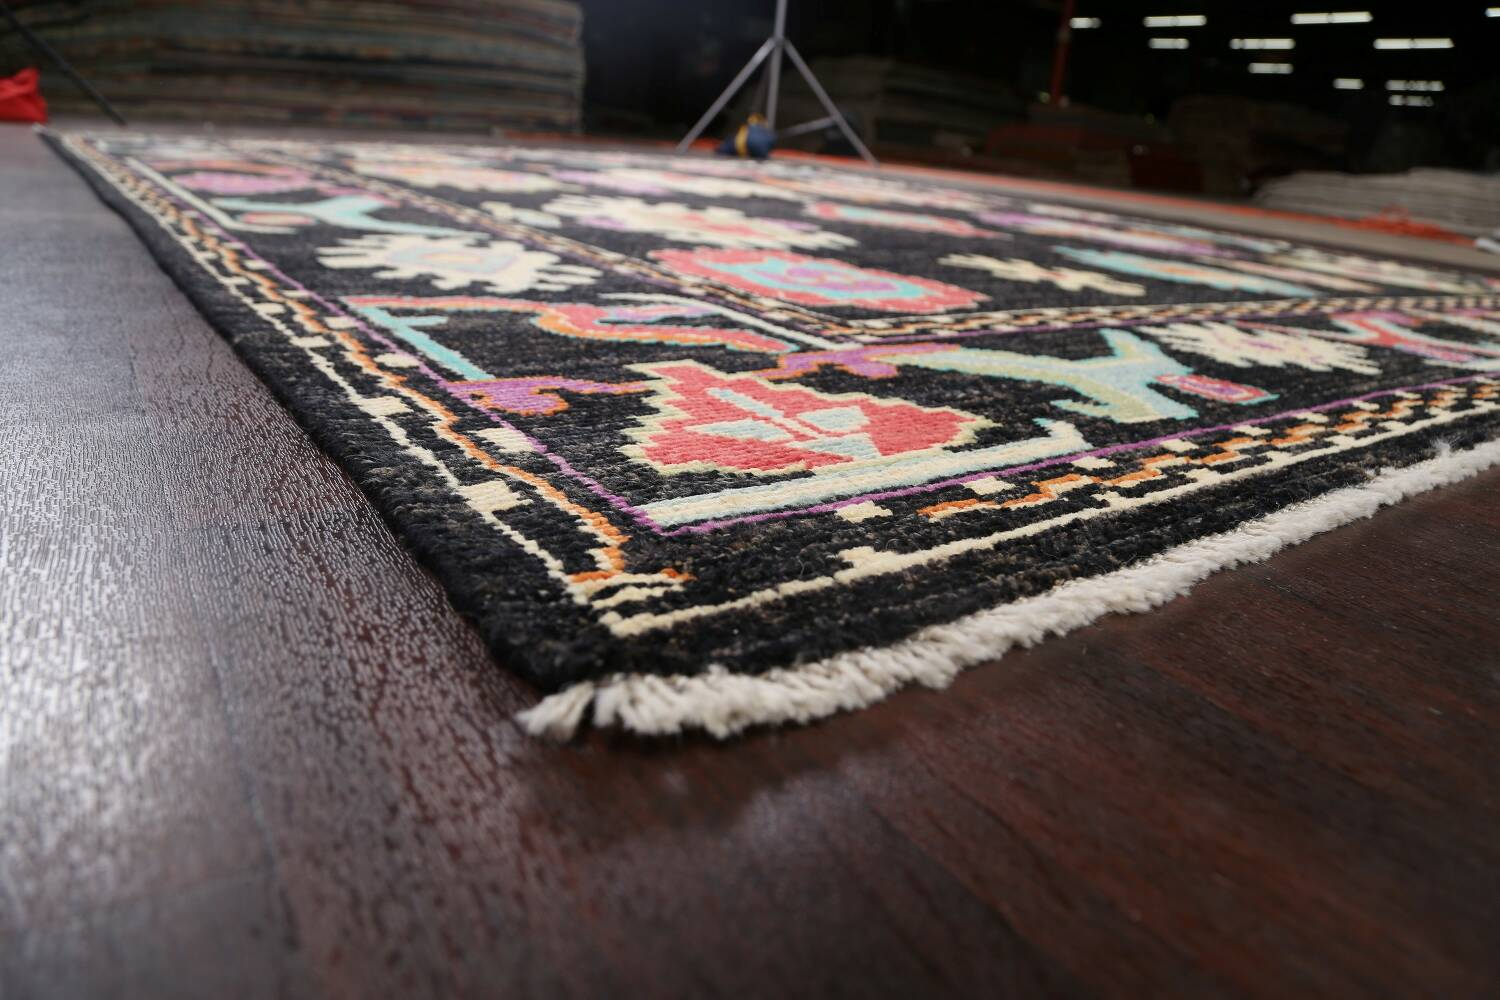 All-Over Authentic Oushak Turkish Oriental Area Rug 9x11 image 6